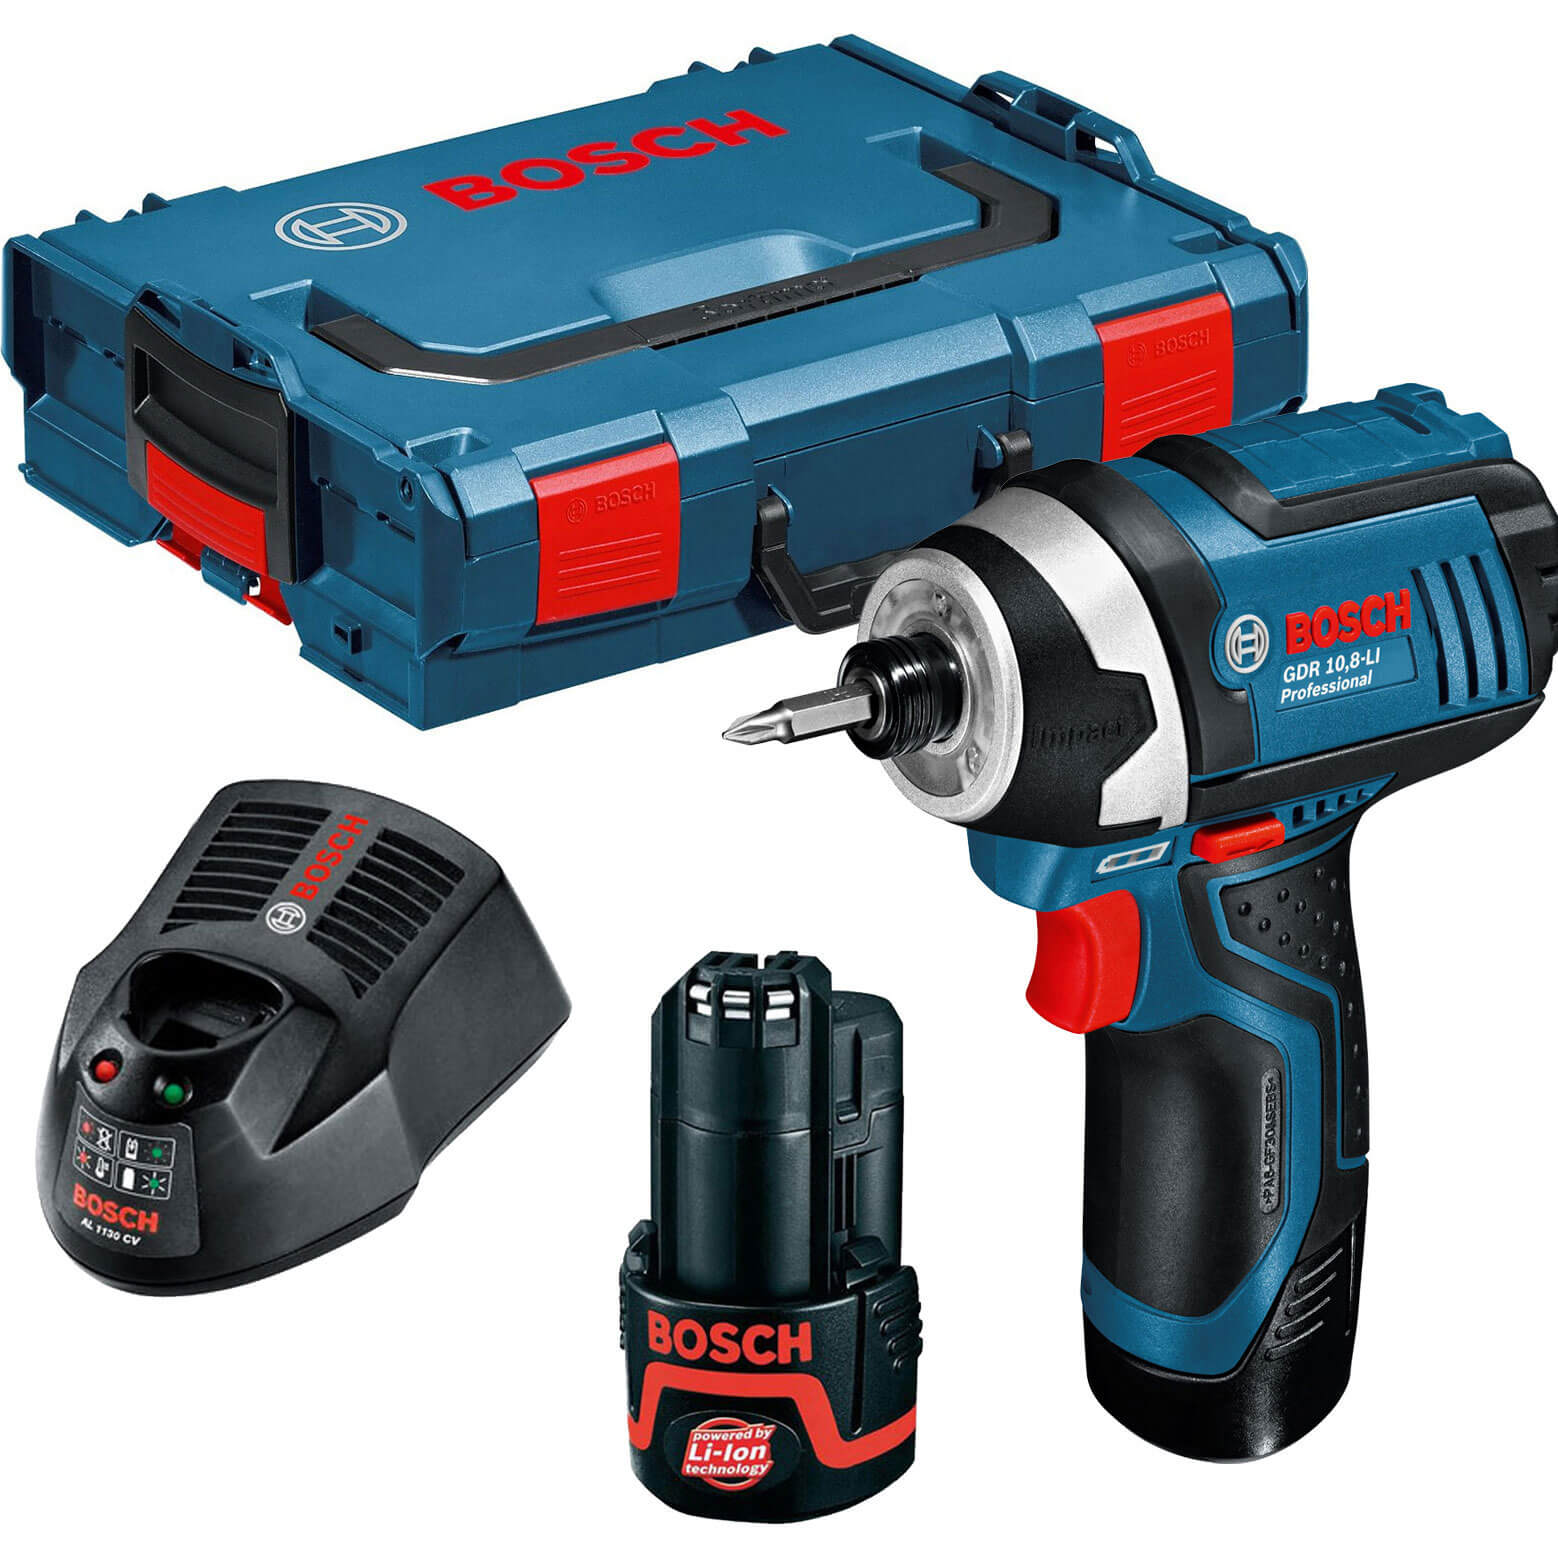 bosch gdr 10 8 v li cordless impact driver with 2 lithium ion batteries 2ah. Black Bedroom Furniture Sets. Home Design Ideas